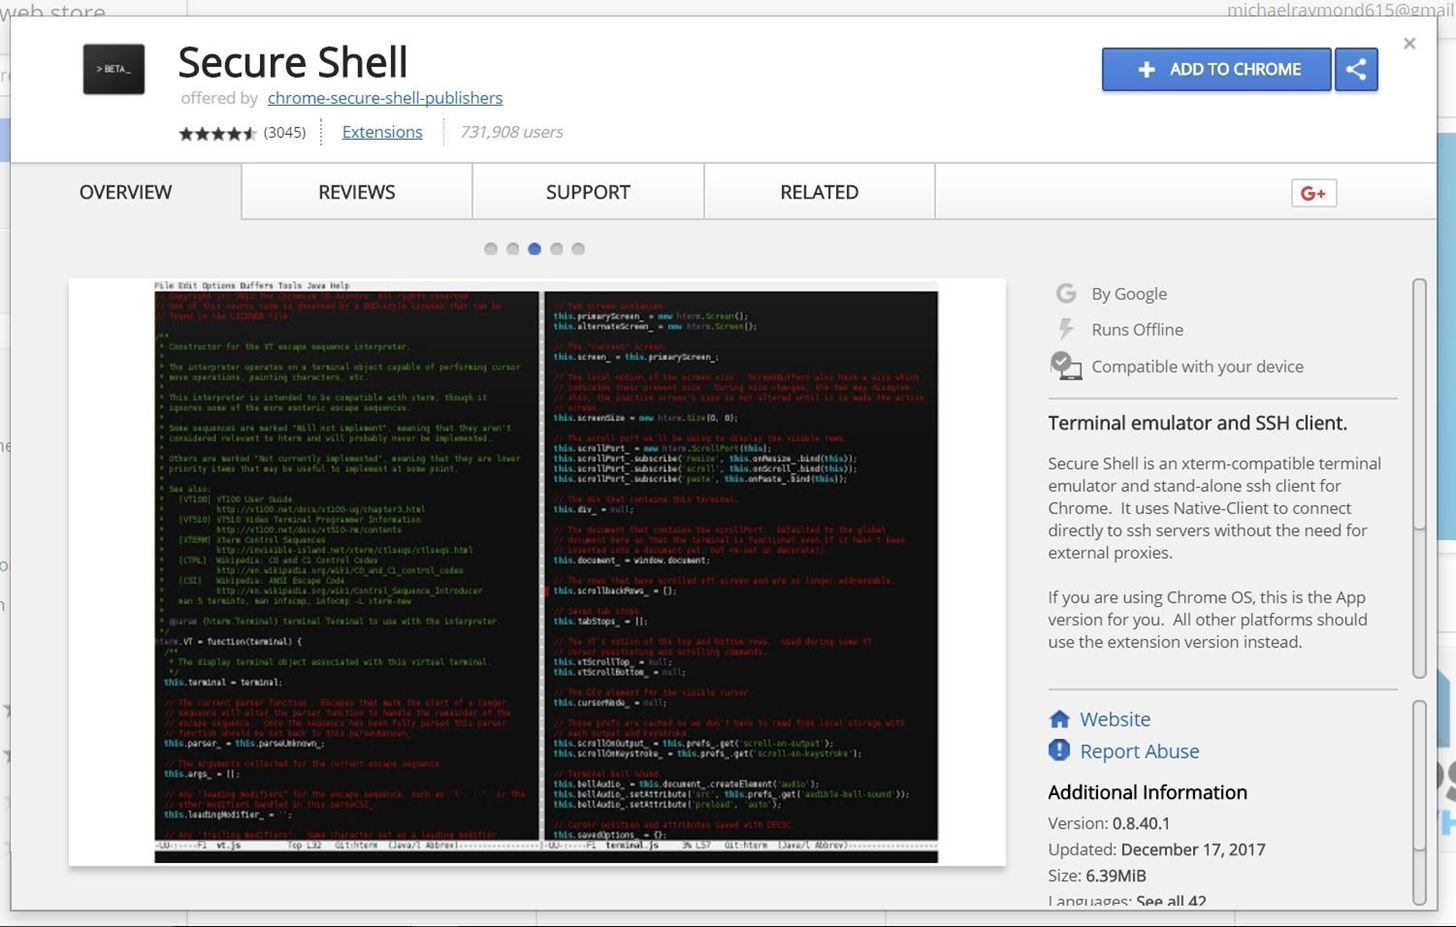 How to Use the Chrome Browser Secure Shell App to SSH into Remote Devices